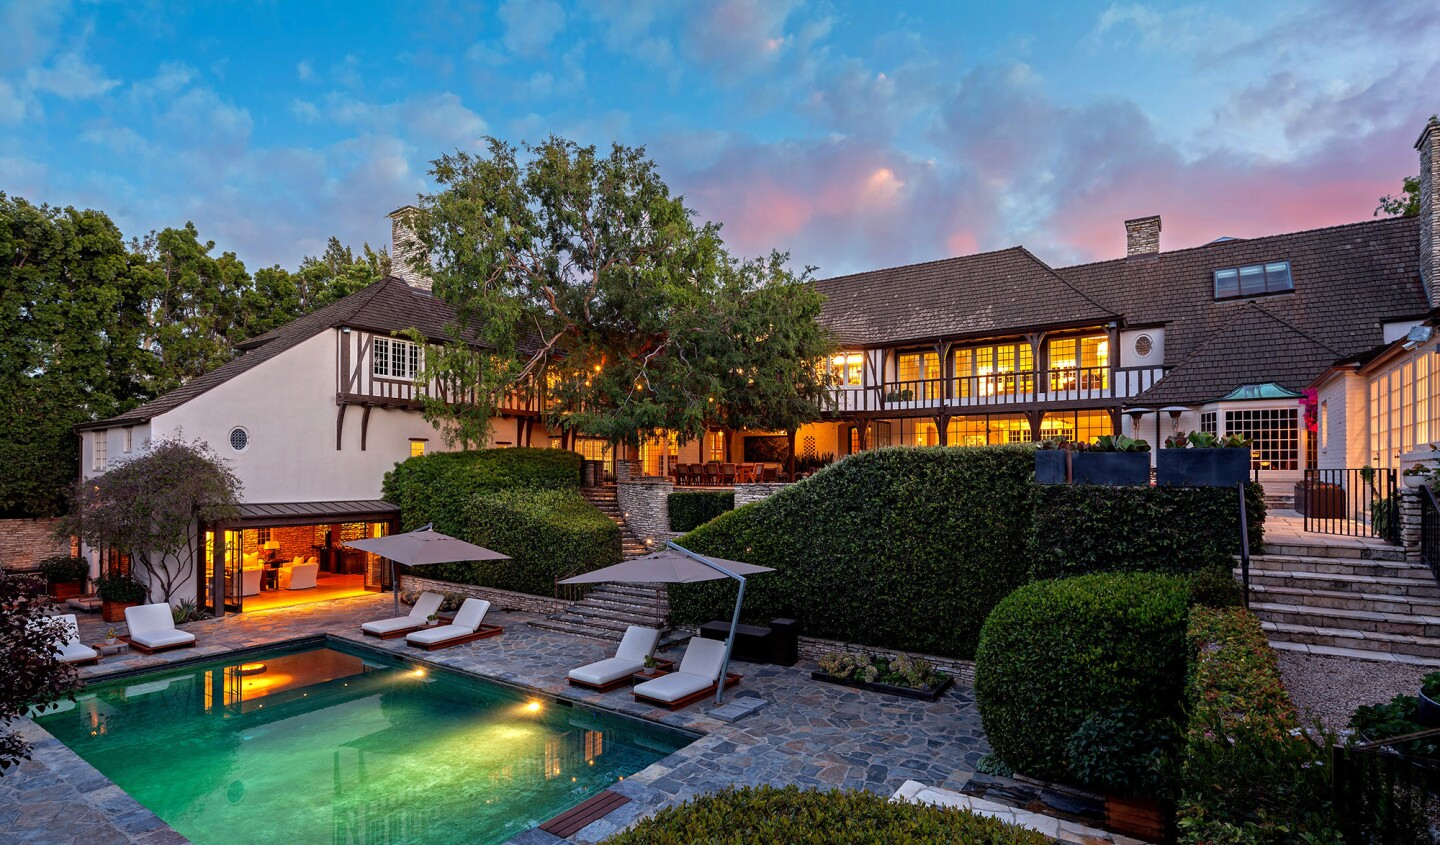 The Tudor-style home in Beverly Hills, listed at $56 million, was built in 1934 for actors Fredric March and Florence Eldridge.